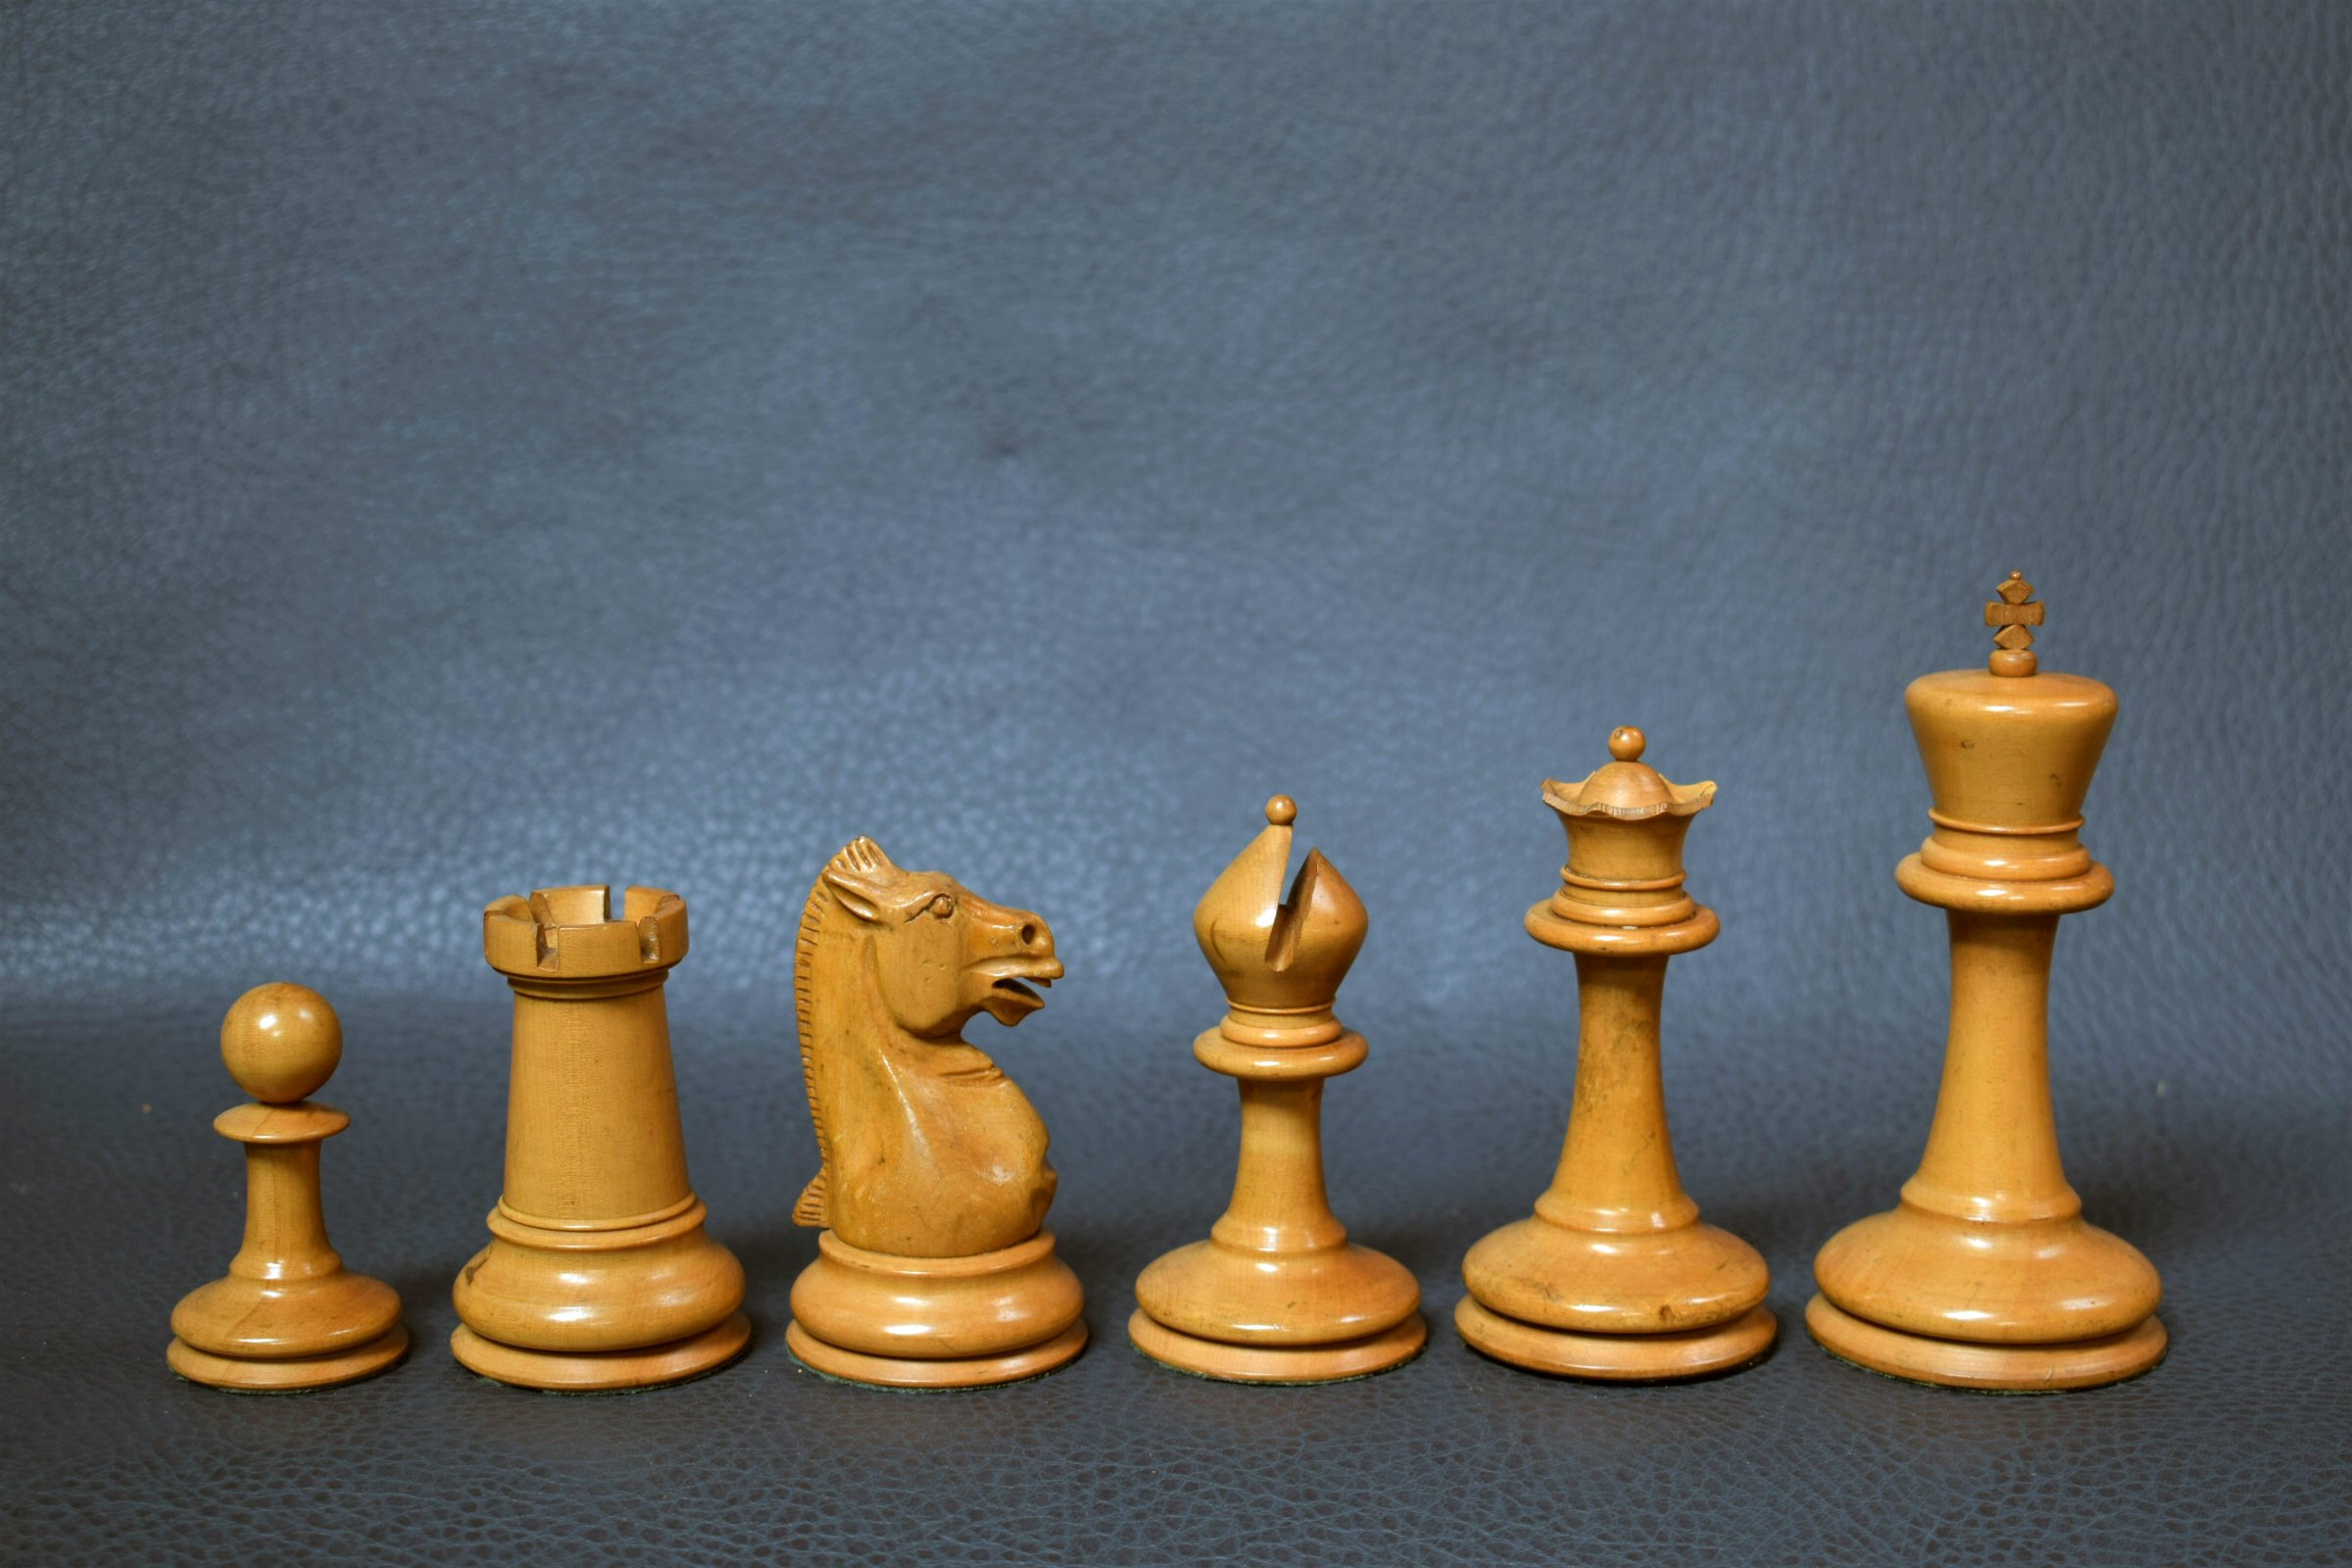 391 Antique Staunton chess set weighted 110mm approx 1880 - Antiekboerderij Het Wagenwiel 1